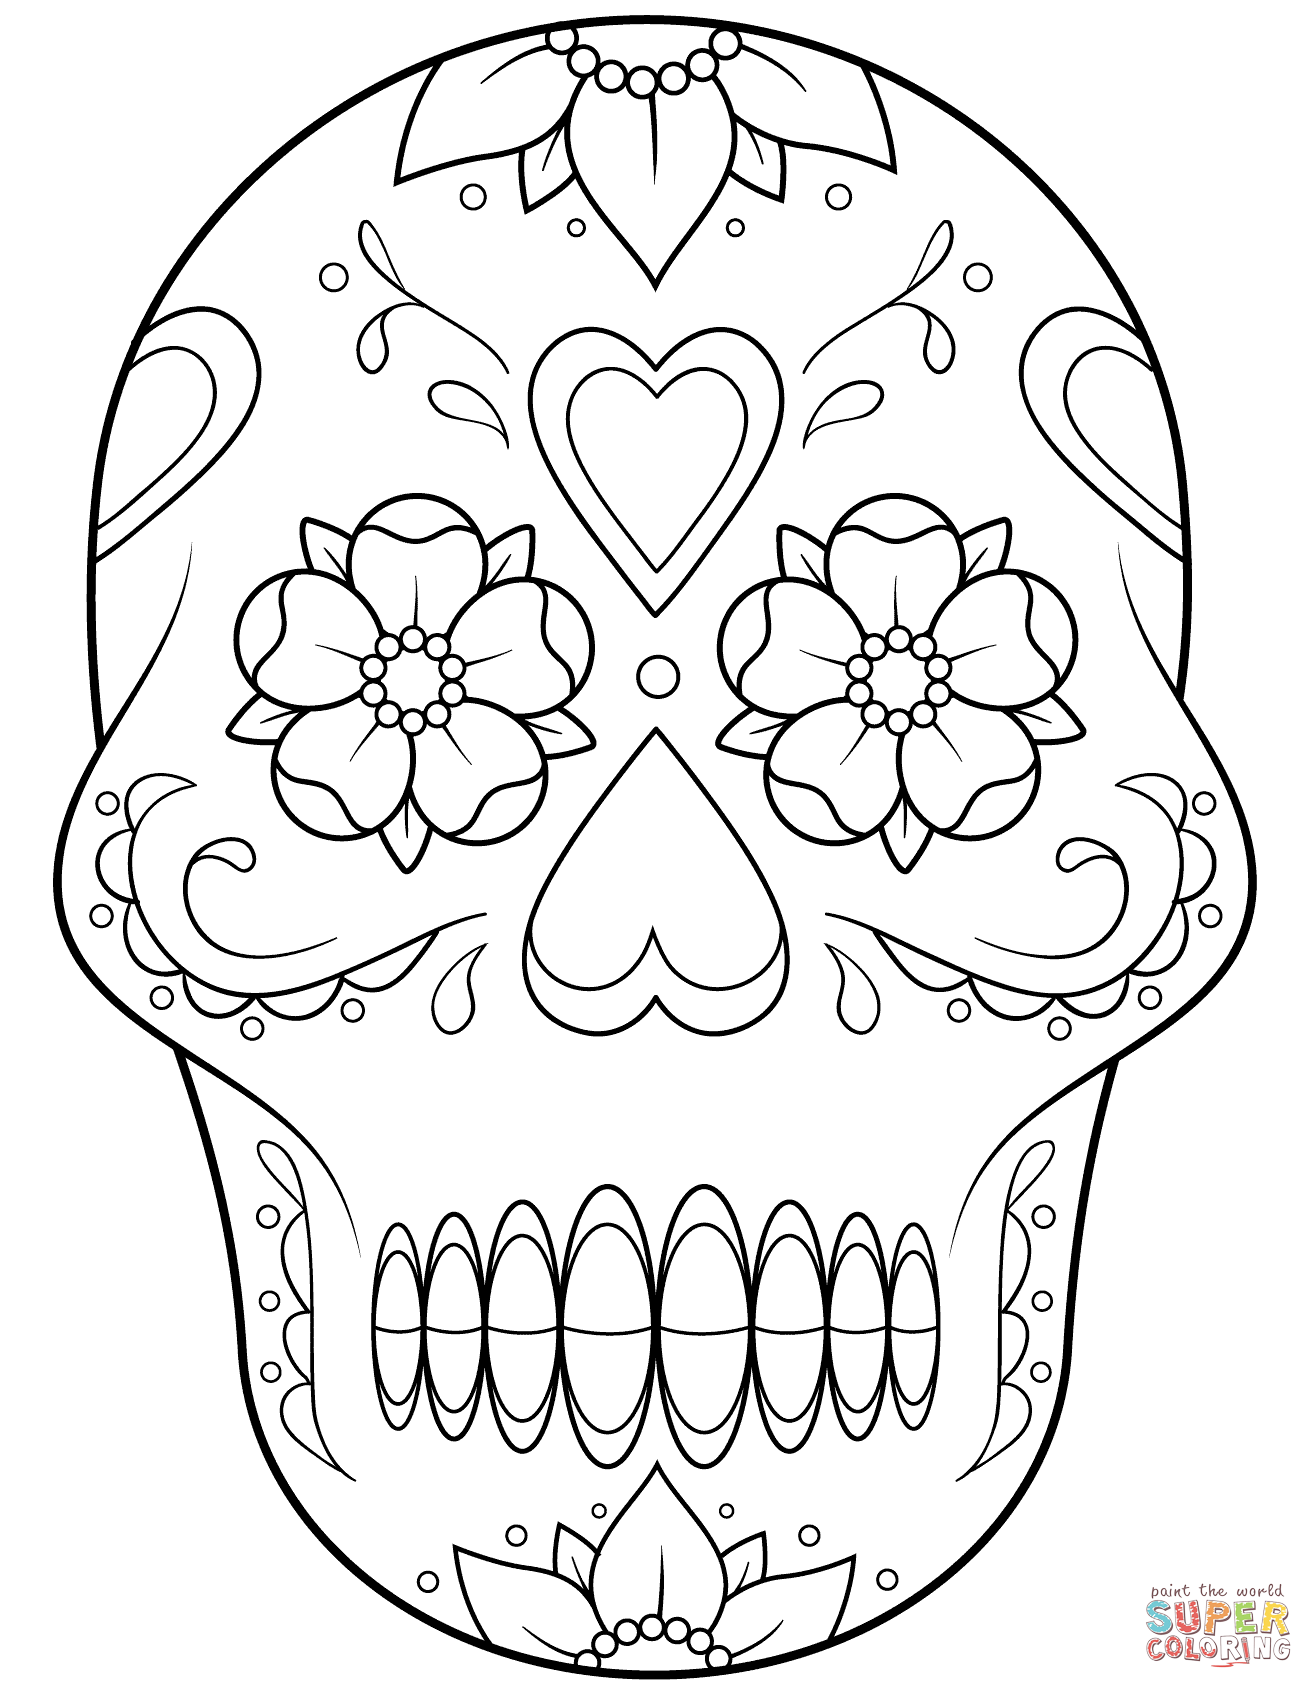 Sugar Skull Drawing Easy At Getdrawings Com Free For